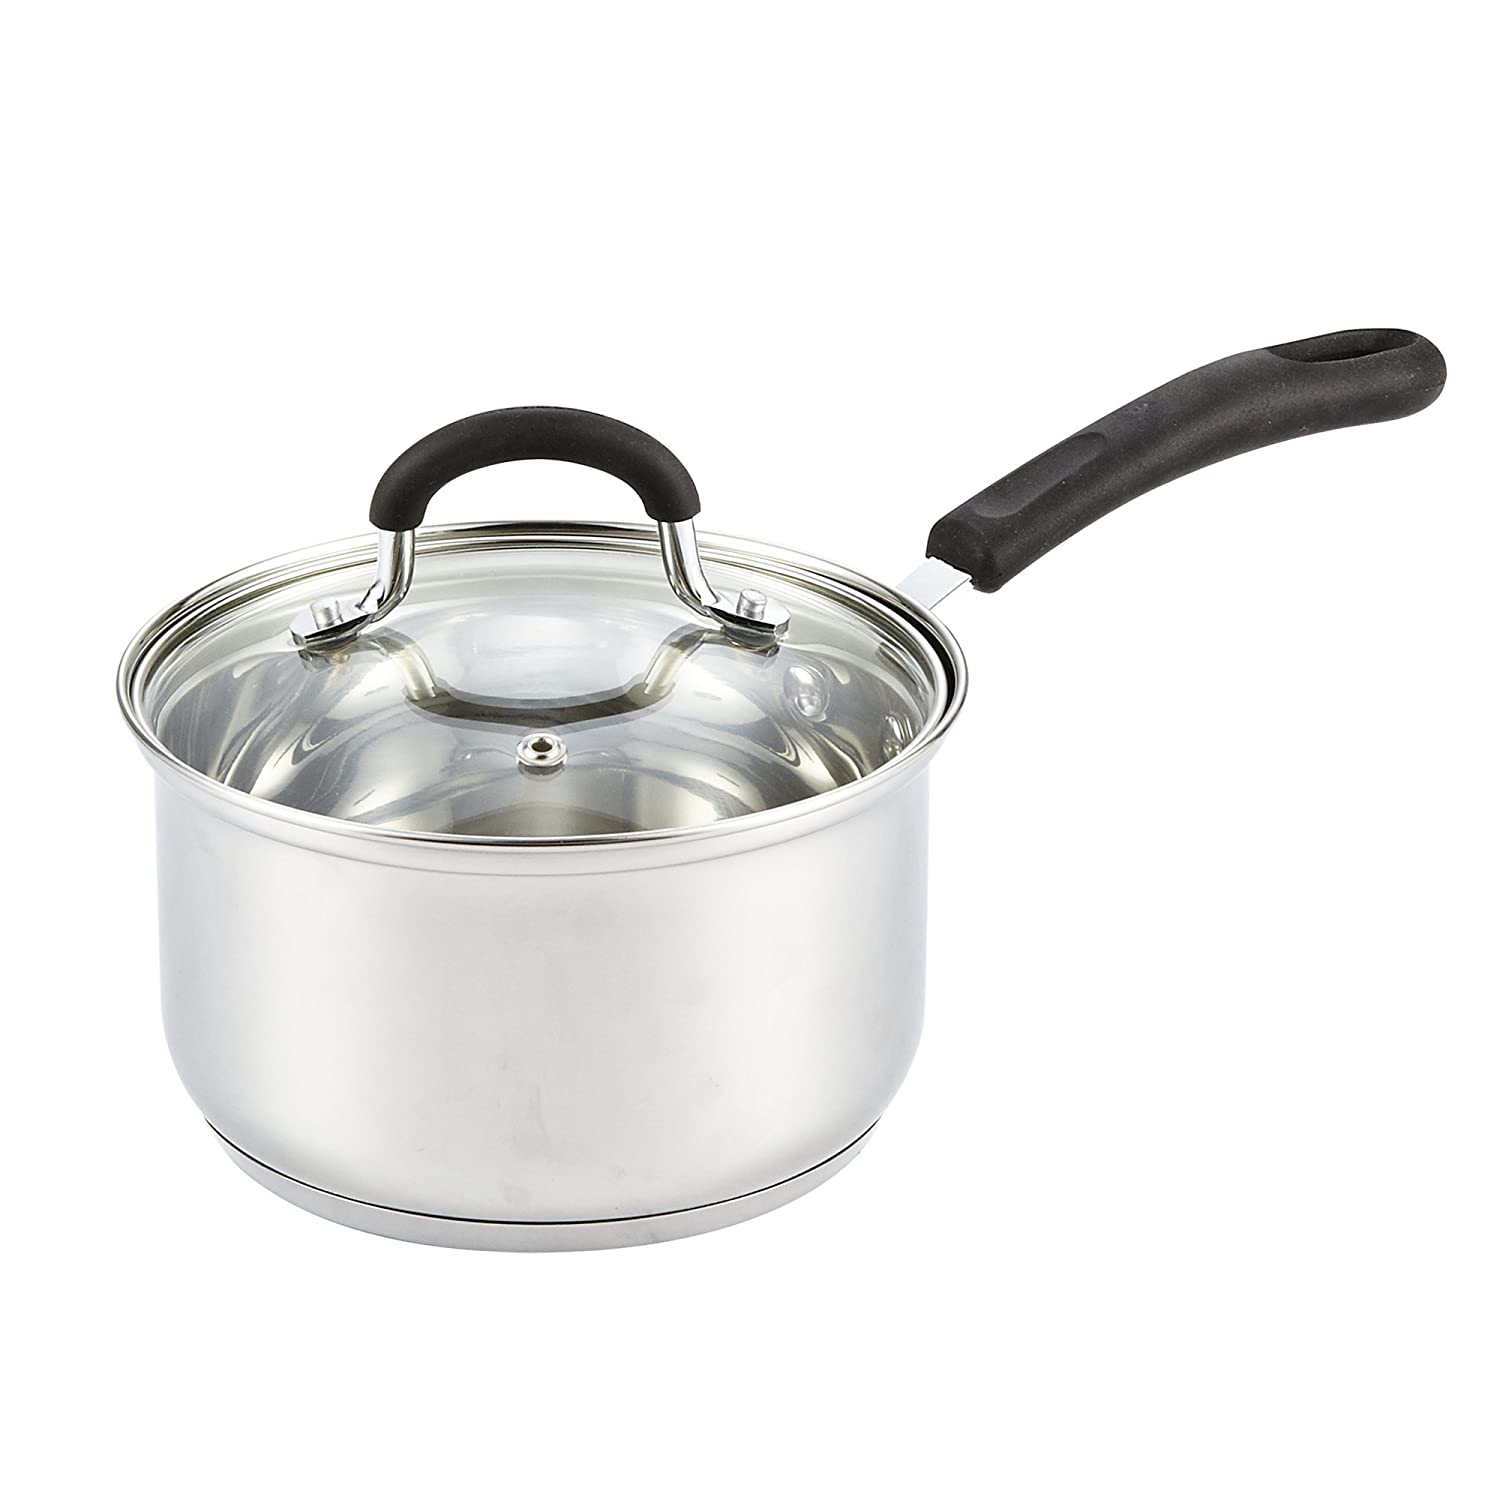 Cook N Home 02416 Lid, Silicone Handle 2-Quart Stainless Steel Saucepan, 2-Qt, Silver